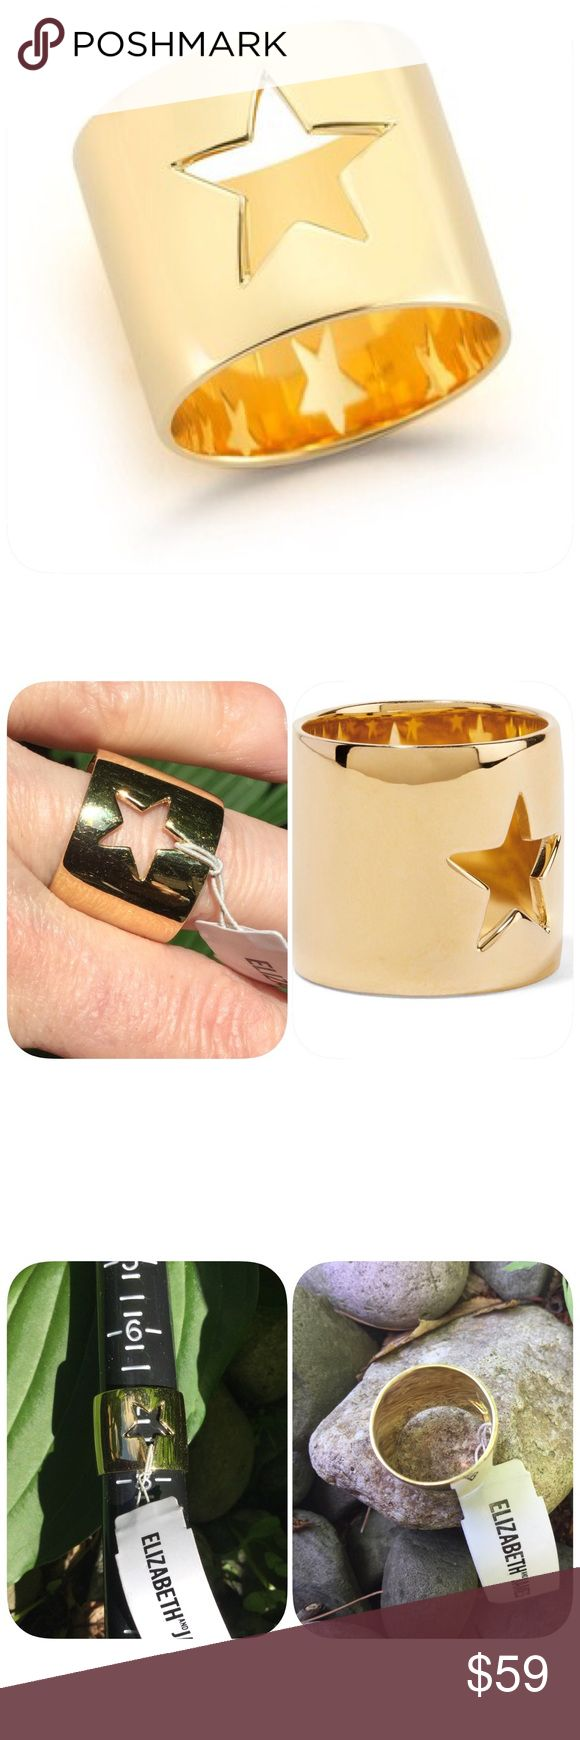 """Elizabeth & James Polaris 23k Gold Plated Ring 23K yellow gold plated star cutout band ring - Approx. 0.67"""" band width - Imported; Materials: 23K yellow gold ... approx 6.75 ring size see photos Elizabeth and James Jewelry Rings"""